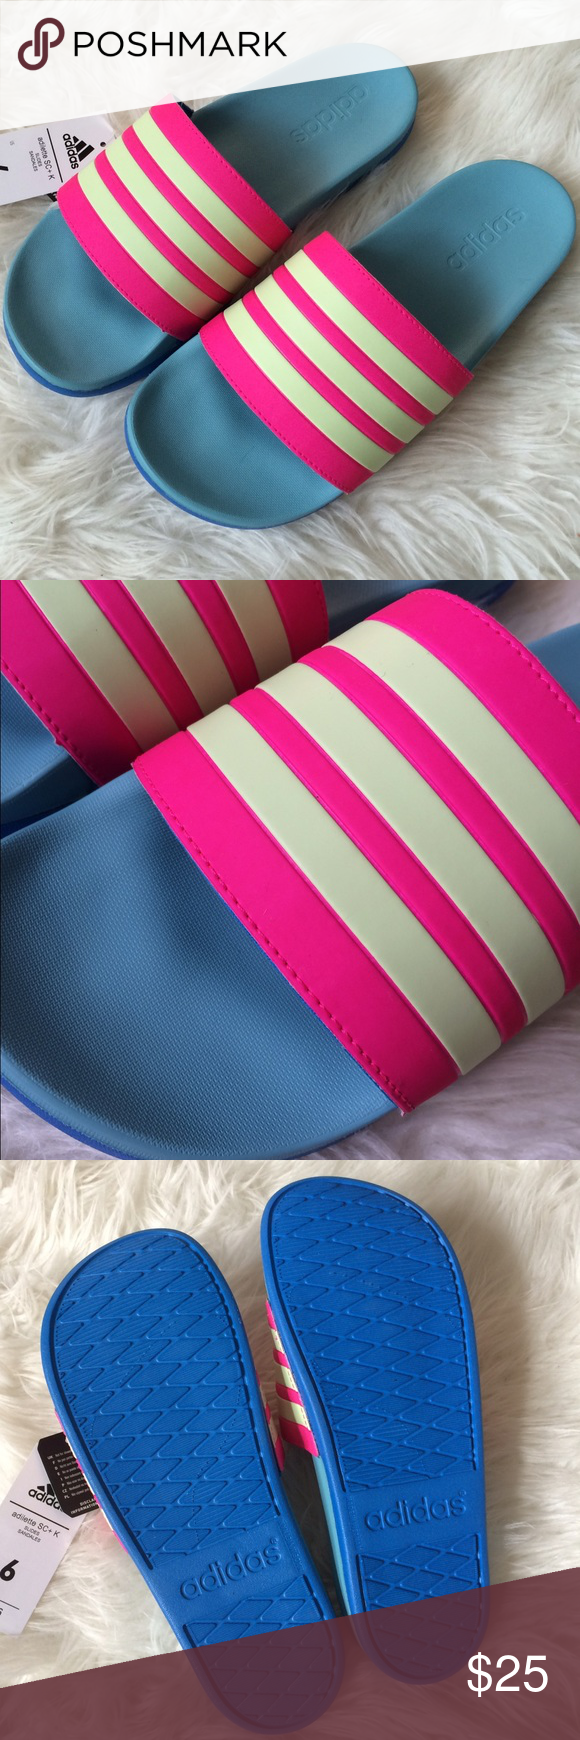 e7cd8e0bb Blue pink yellow Adilette athelic slide sandal 8 No box. Technically they  are kids size